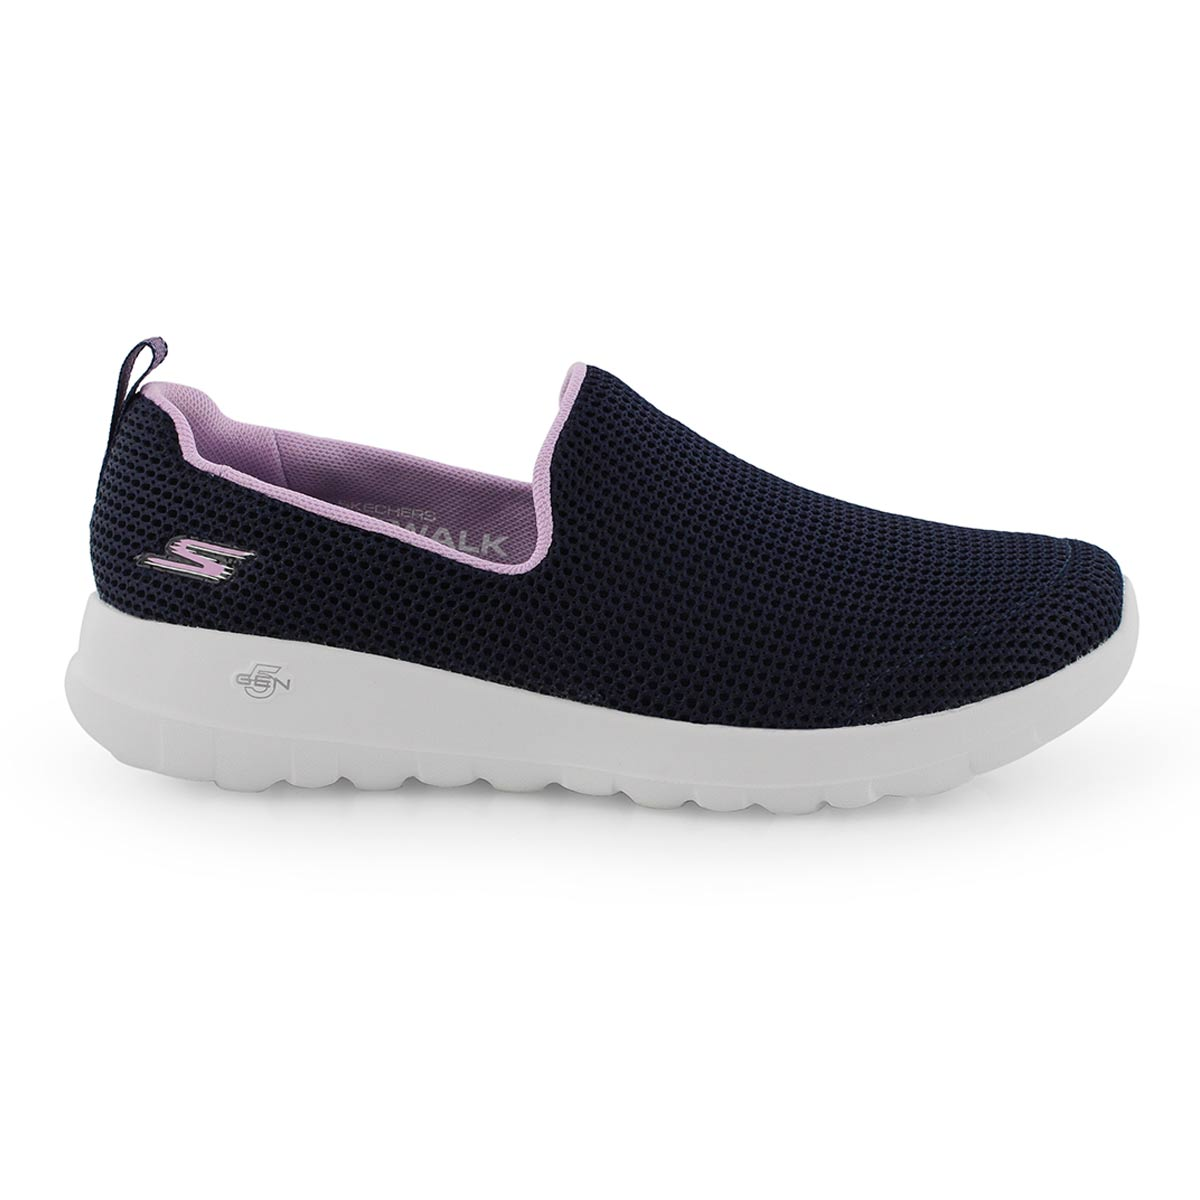 Lds GO Walk Joy nvy/lvndr slip on shoe